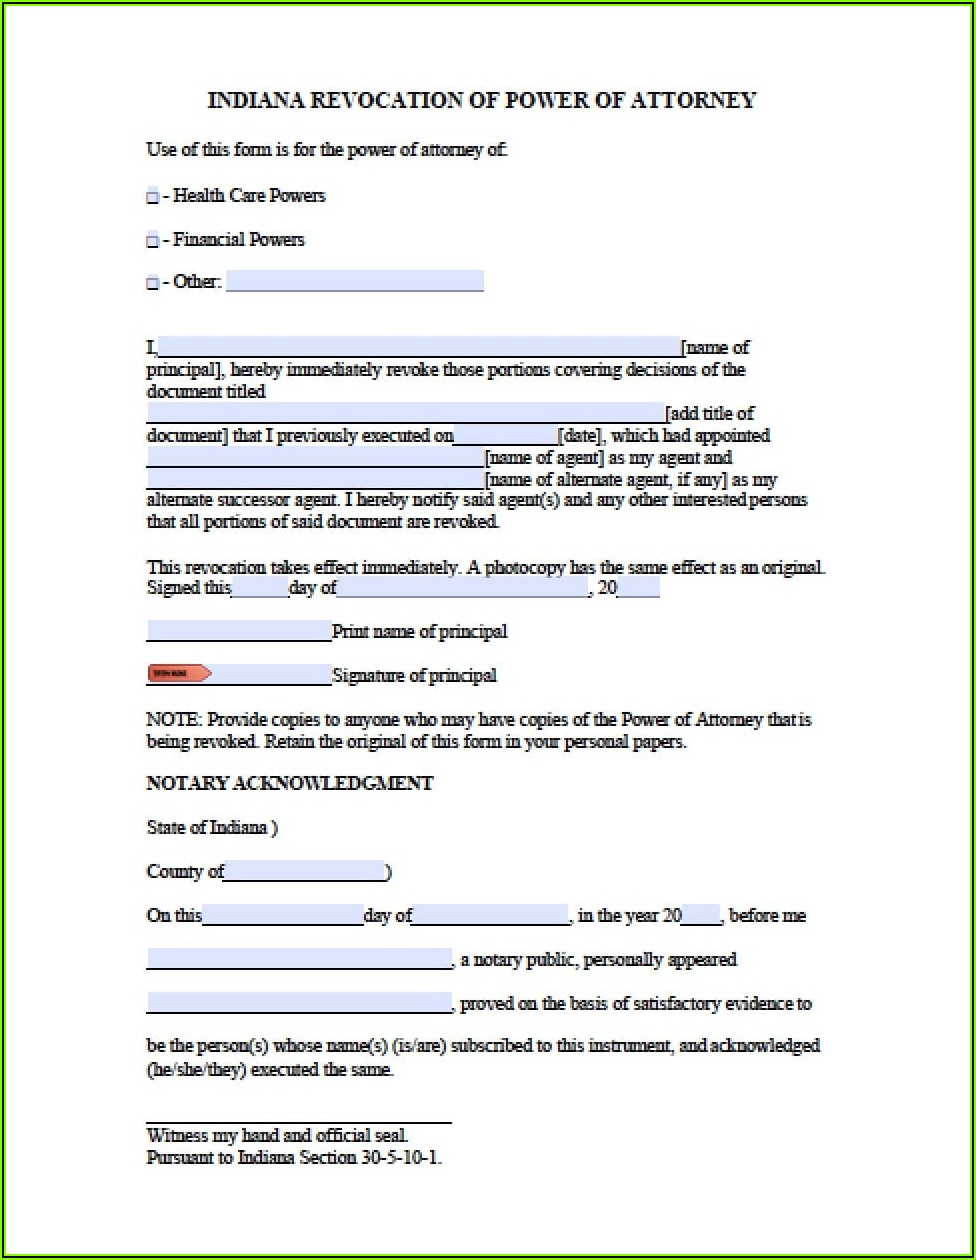 Relinquish Power Of Attorney Template